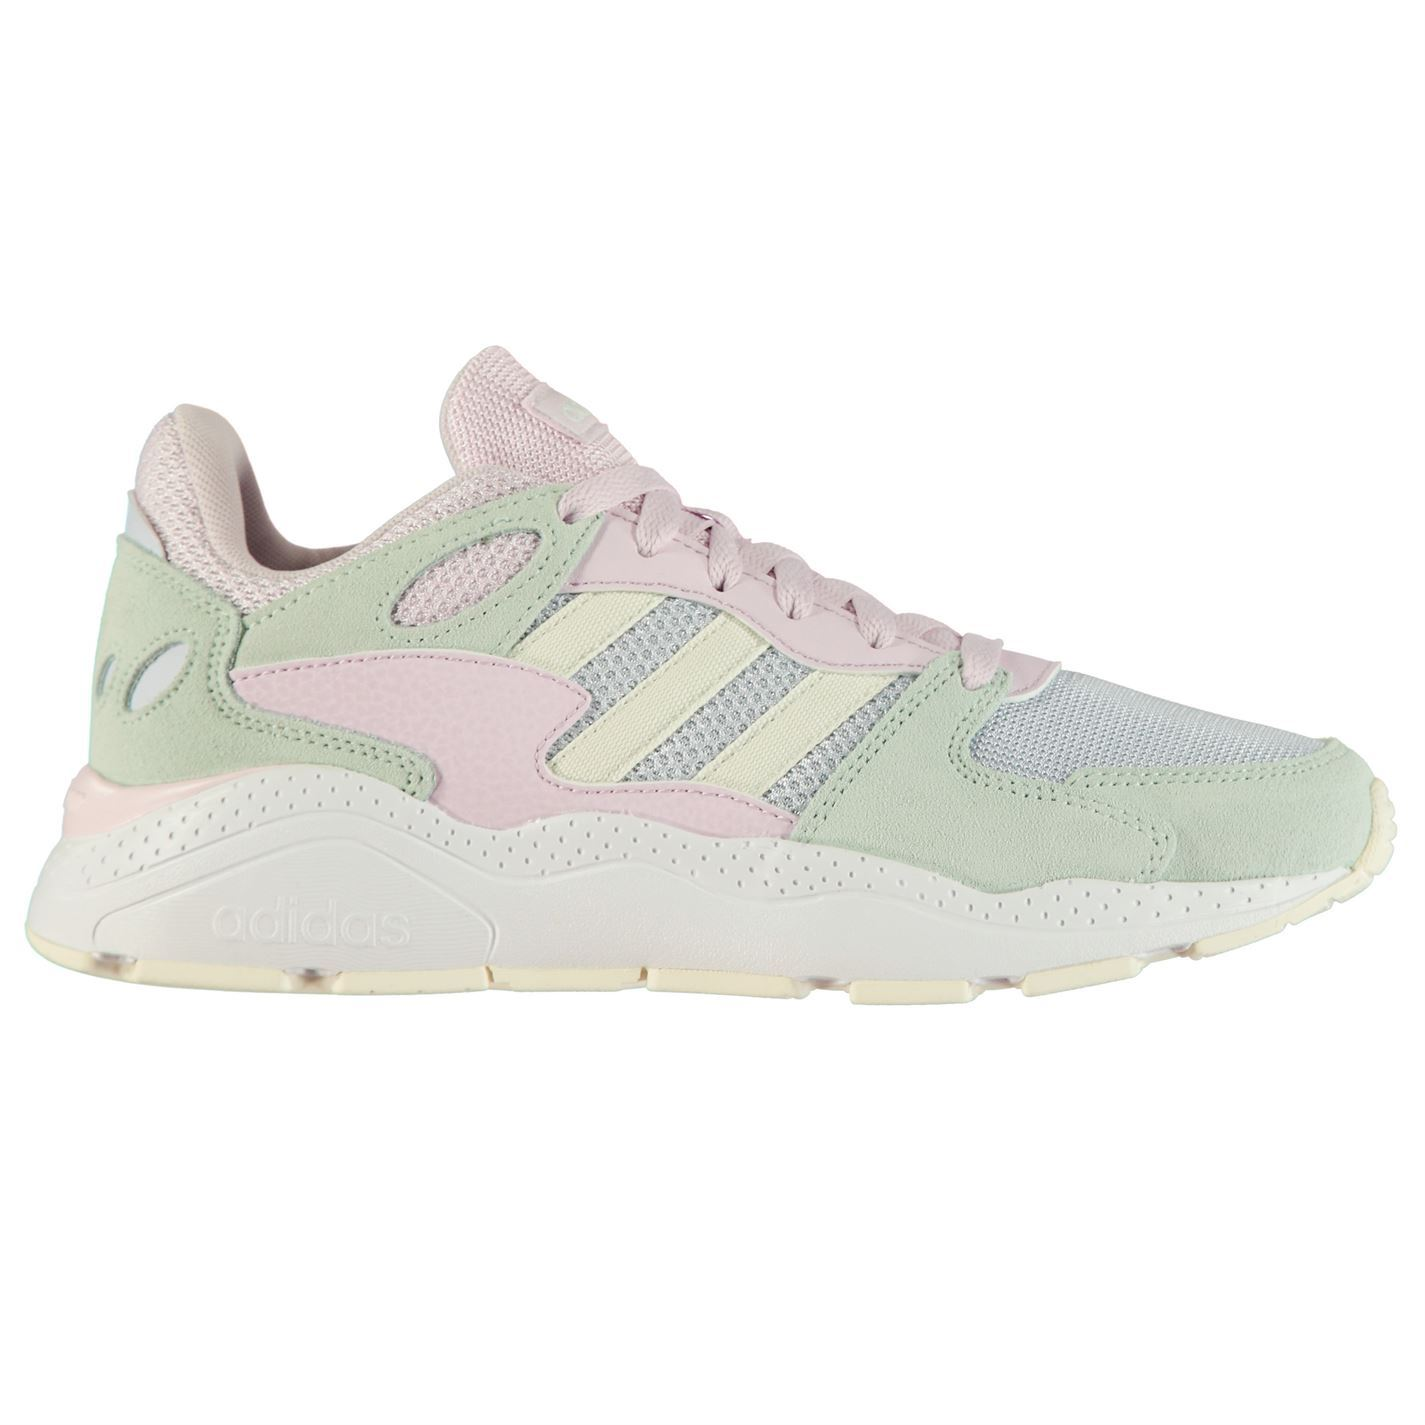 Details about adidas Crazychaos Womens Trainers Shoes Ladies Running Sneakers Footwear